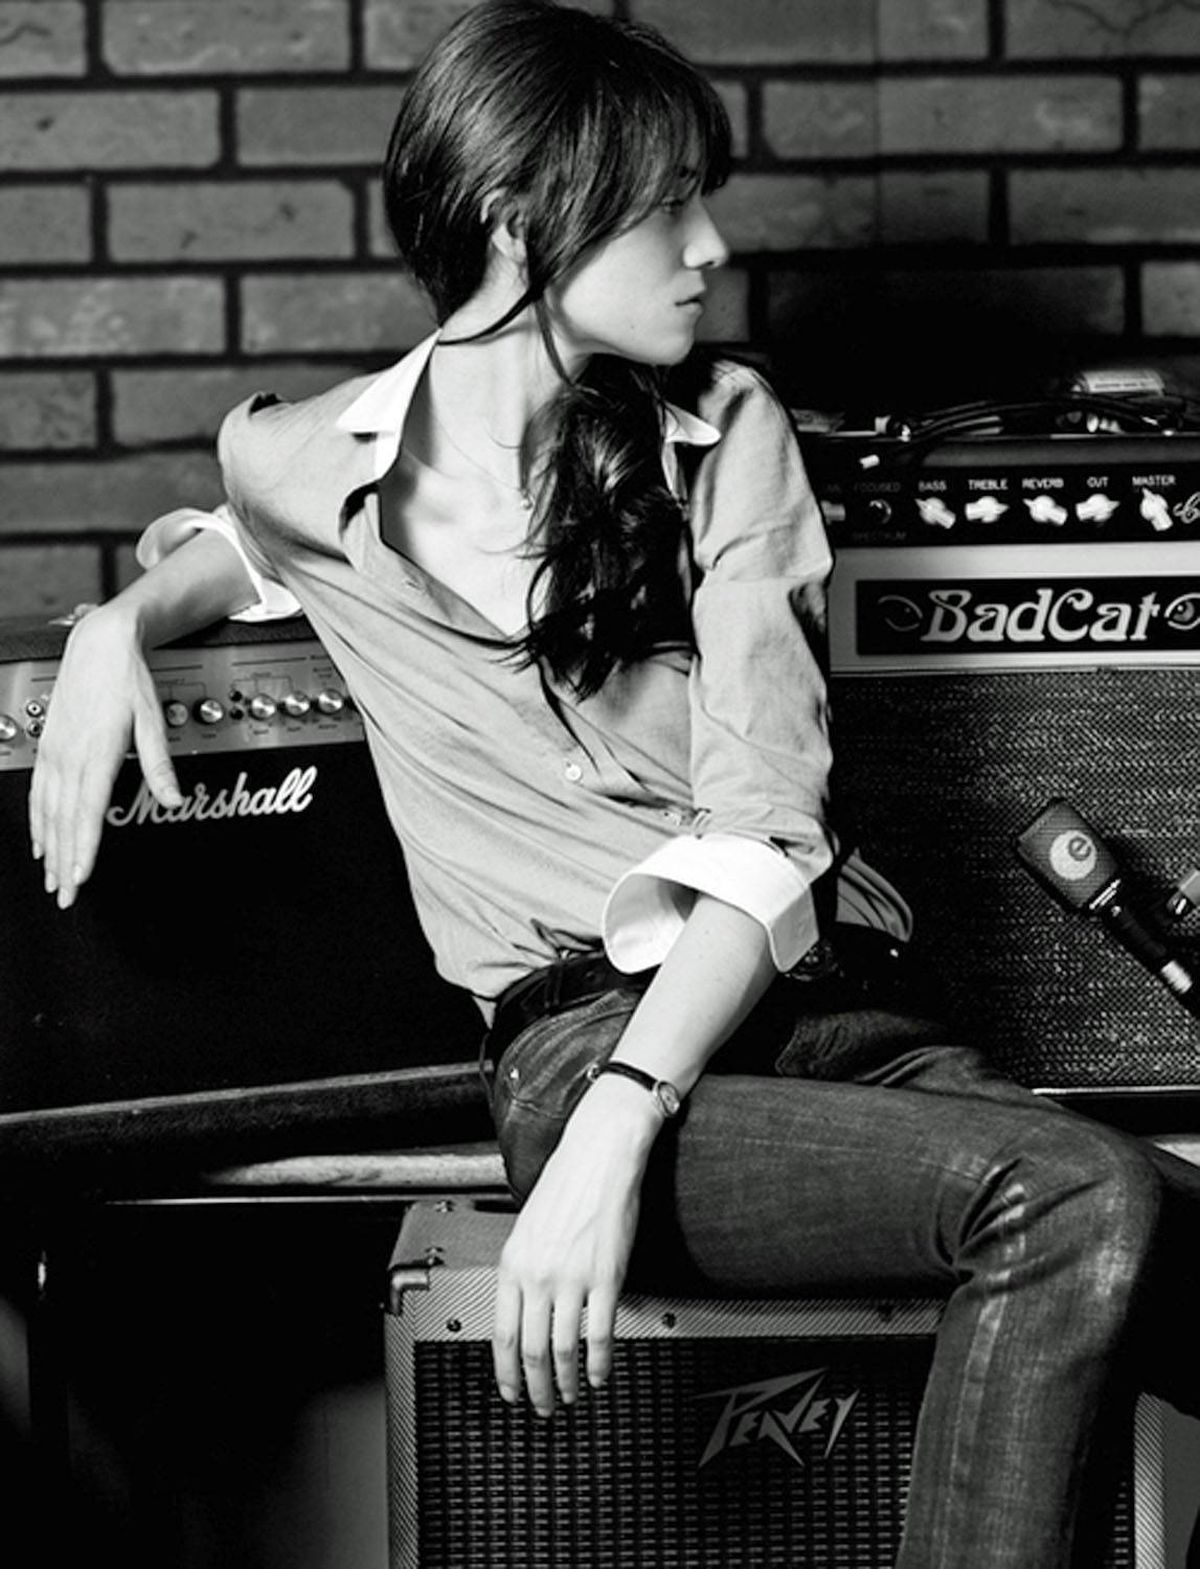 Charlotte Gainsbourg is gaining hipster cachet in both film and music.